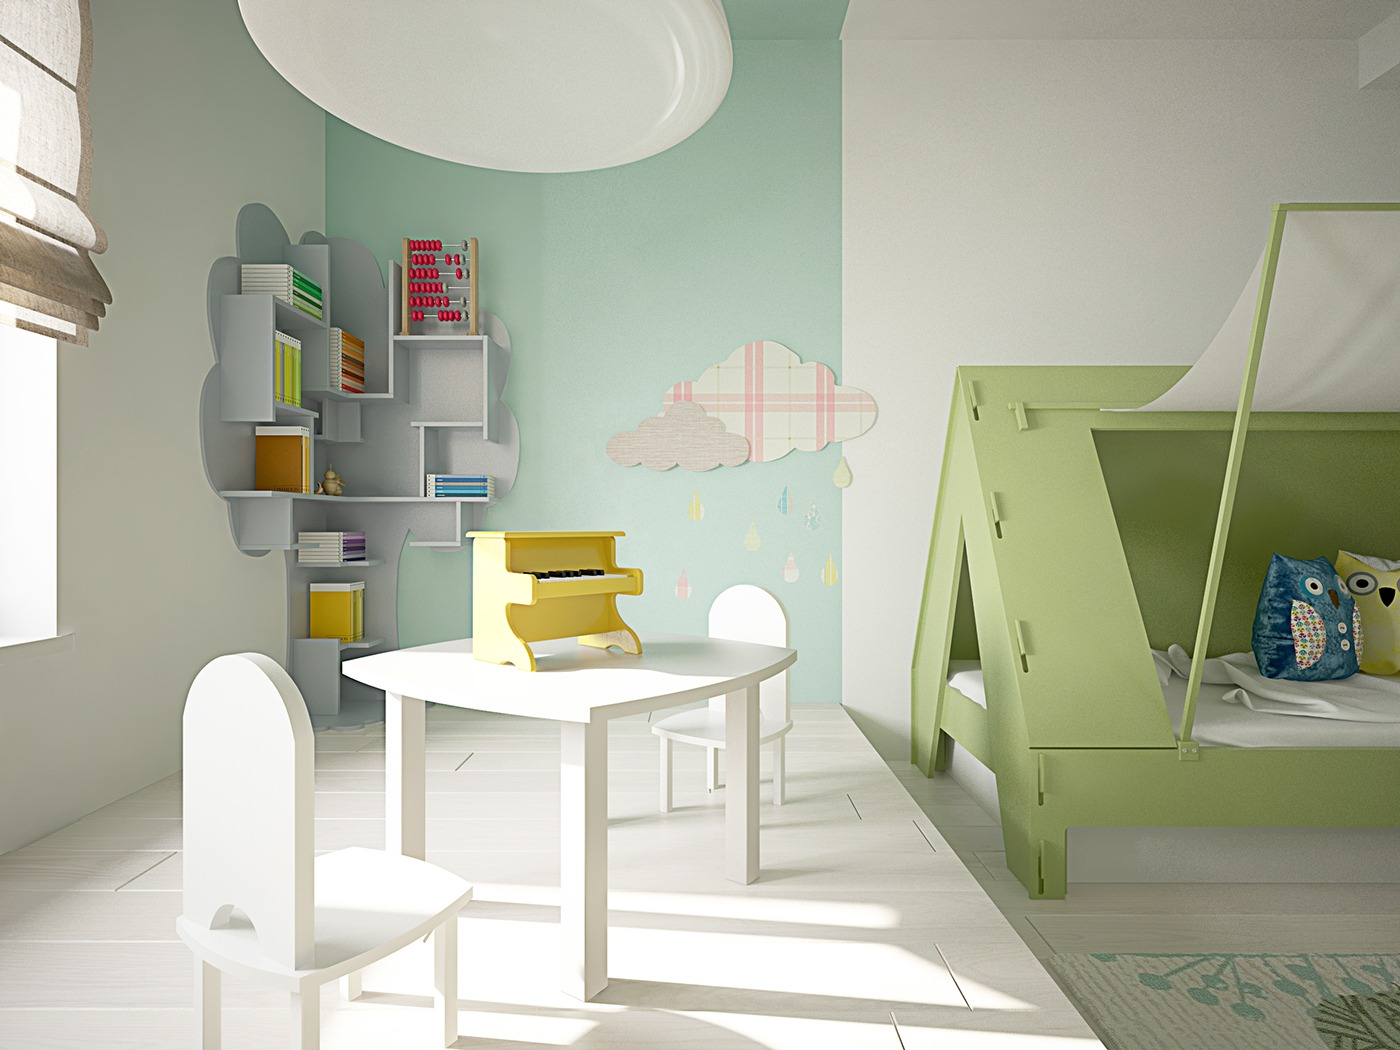 Bedroom designer for kids - Bedroom Designer For Kids 40